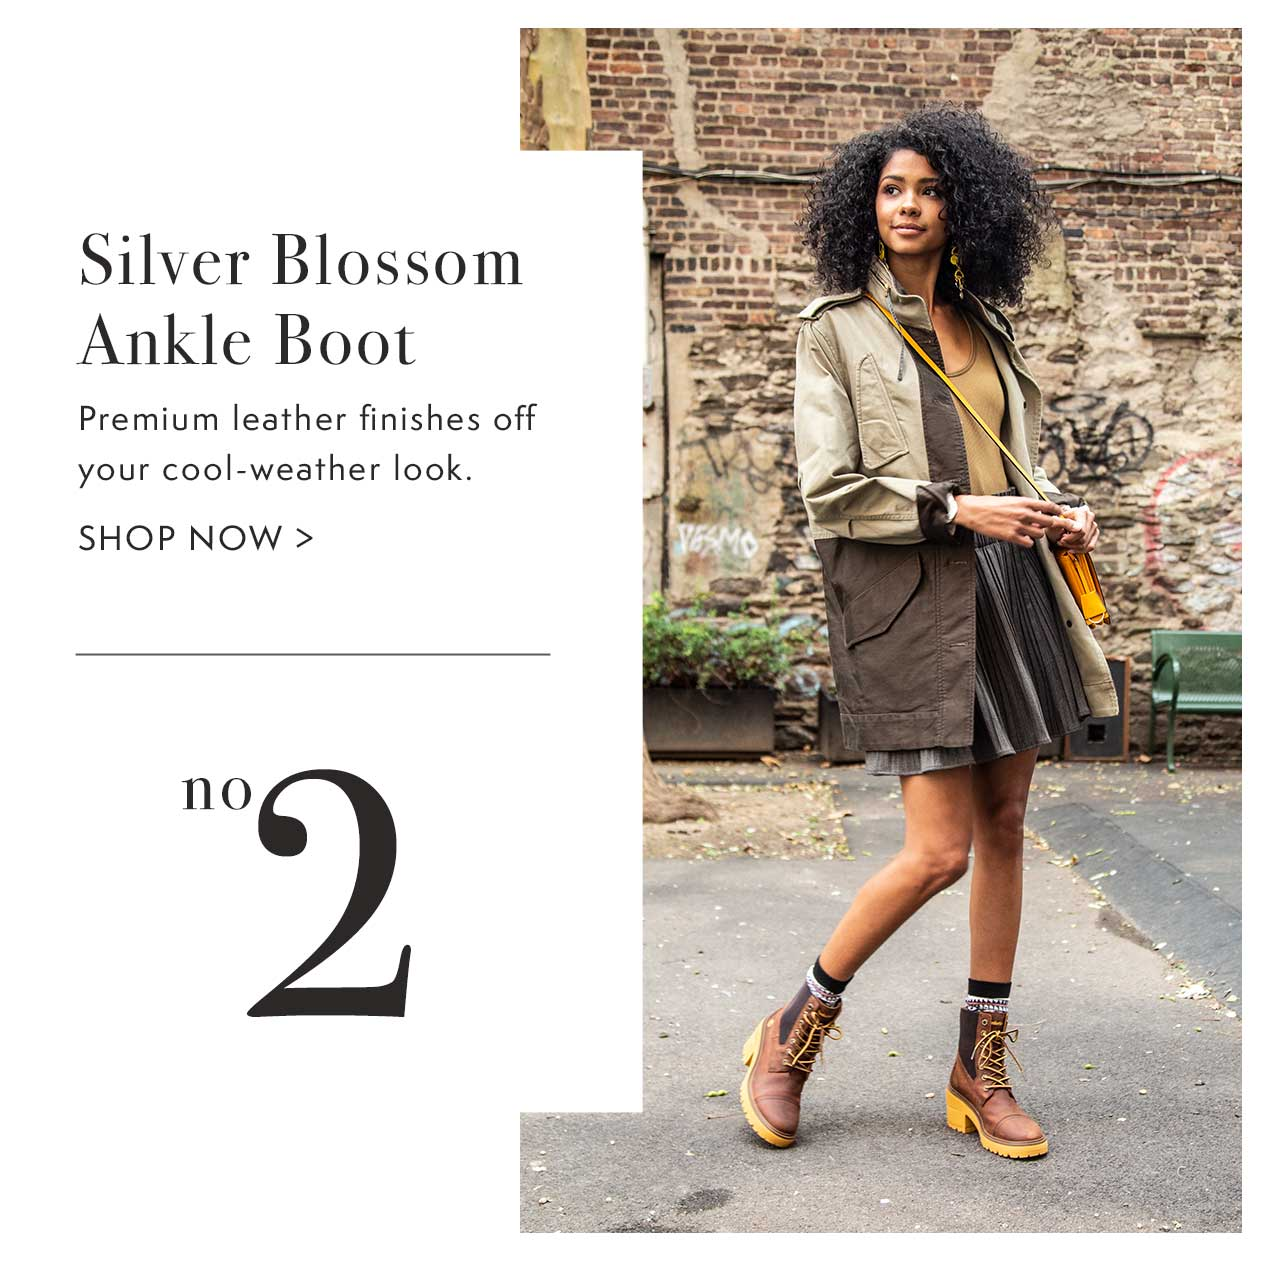 Silver Blossom Ankle Boot No. 2                                                 Shop Now